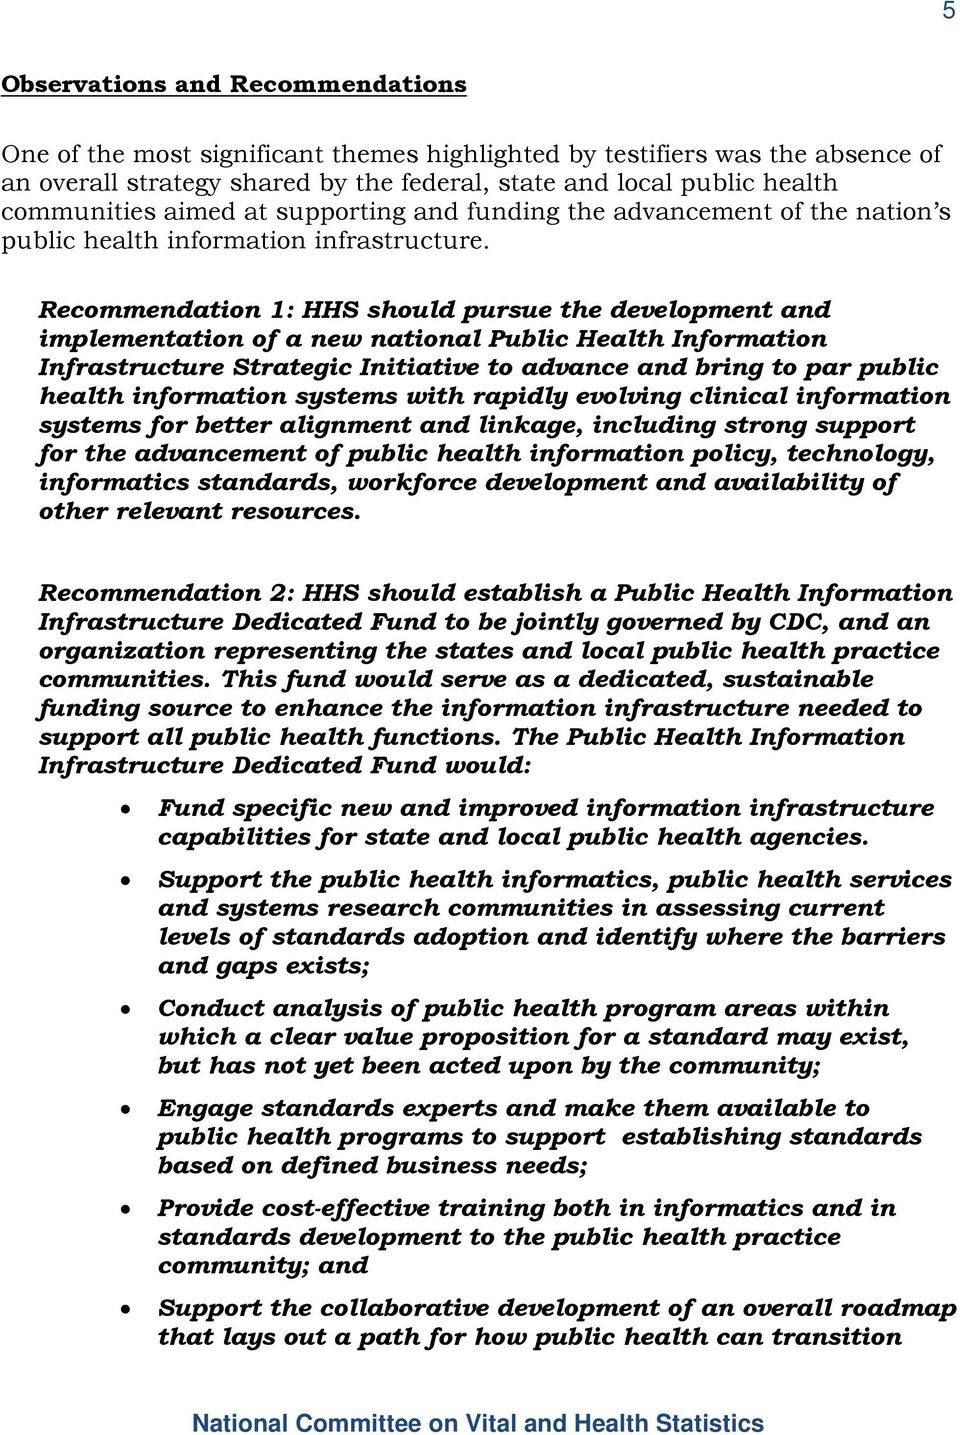 Recommendation 1: HHS should pursue the development and implementation of a new national Public Health Information Infrastructure Strategic Initiative to advance and bring to par public health